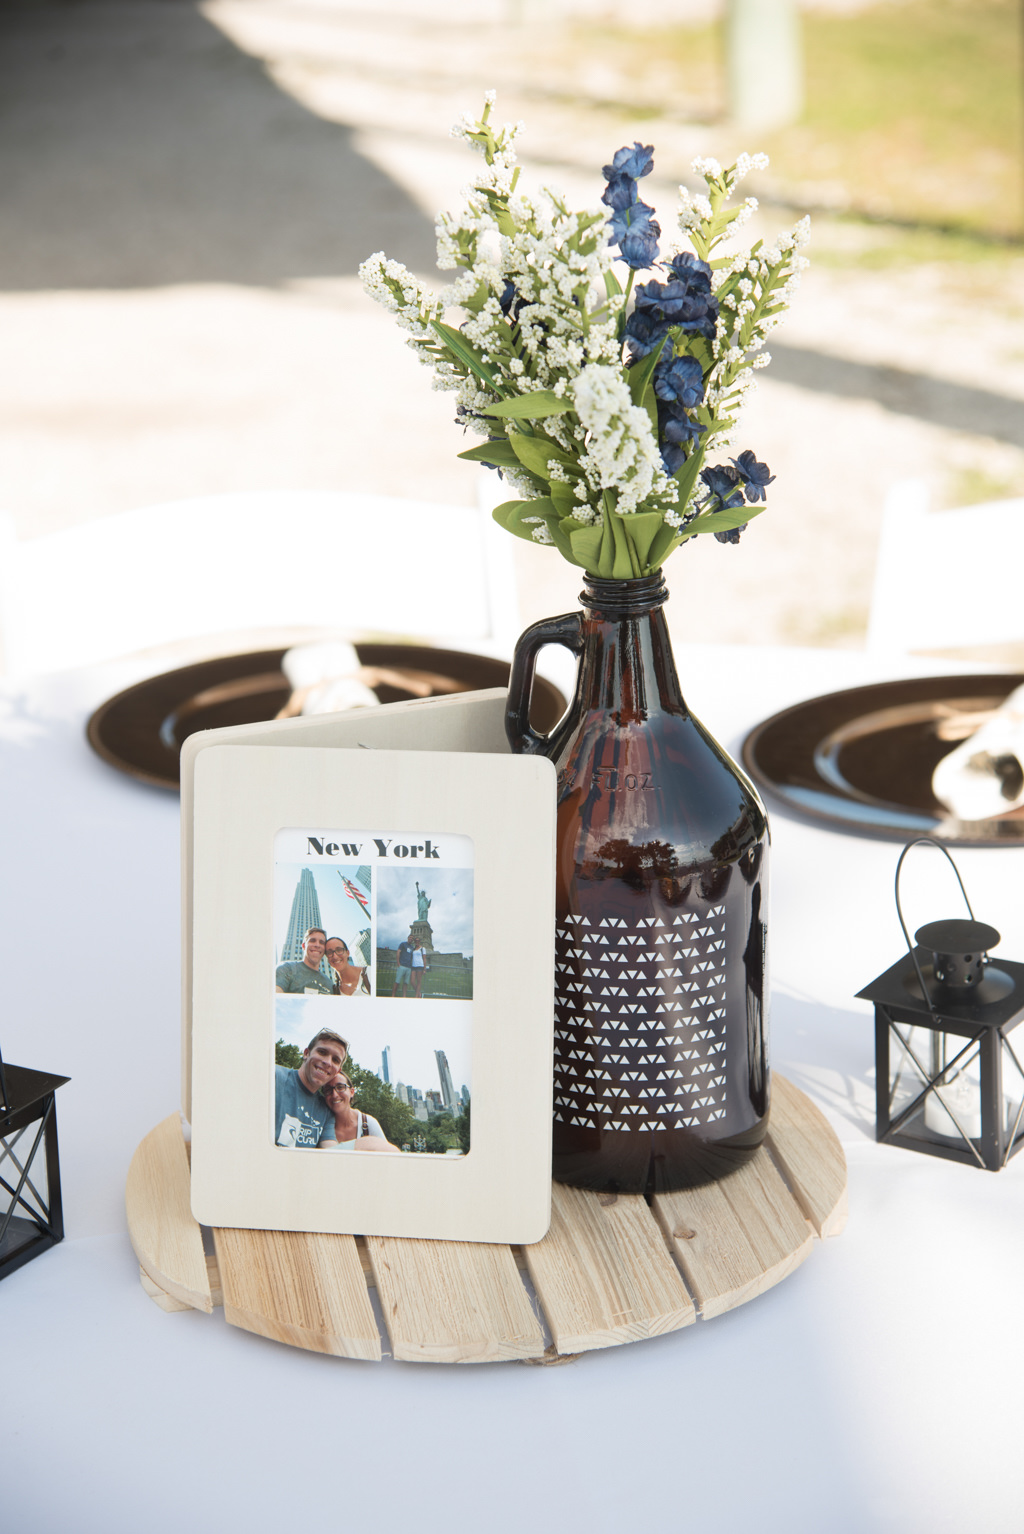 Rustic Wedding Reception Decor, Round Wooden Tray, Photo of Couple on Wooden Frame, Beer Growler Glass Bottle with White, Blue and Greenery Floral Centerpiece | Tampa Bay Florist Cotton and Magnolia